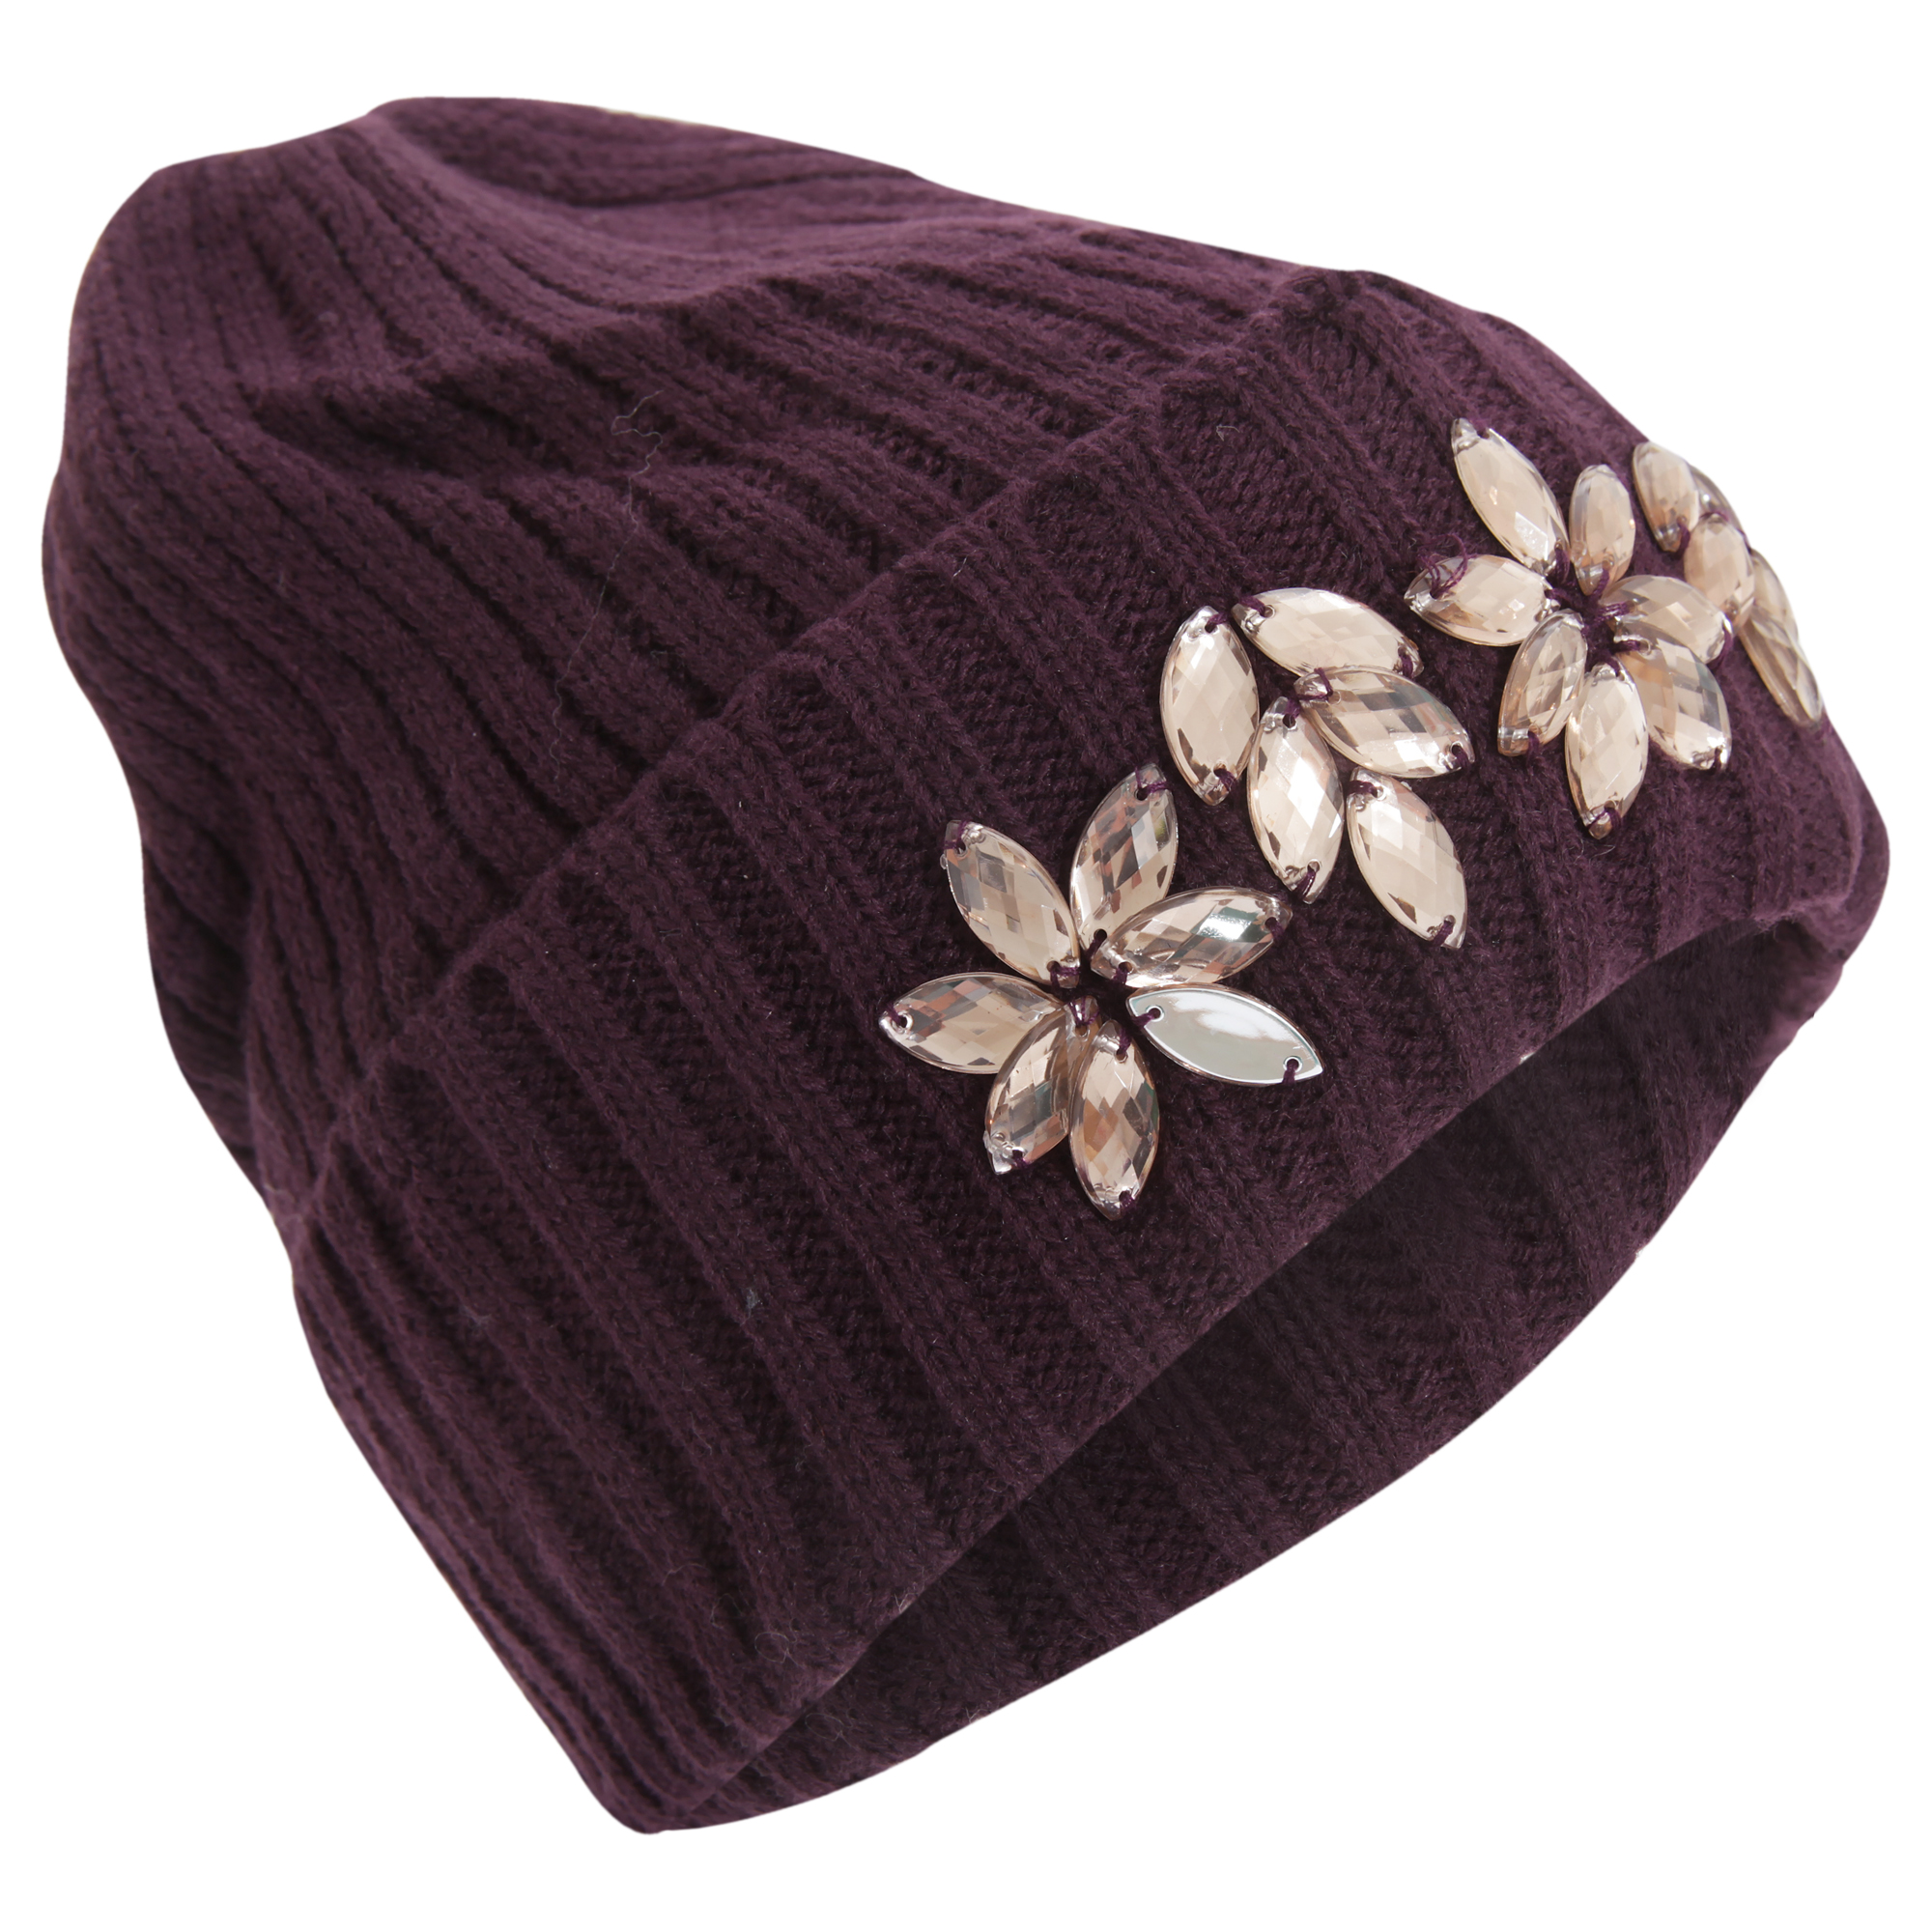 92df7172a7f Womens ladies Knitted Winter Hat With Plastic JEWEL Detail One Size ...